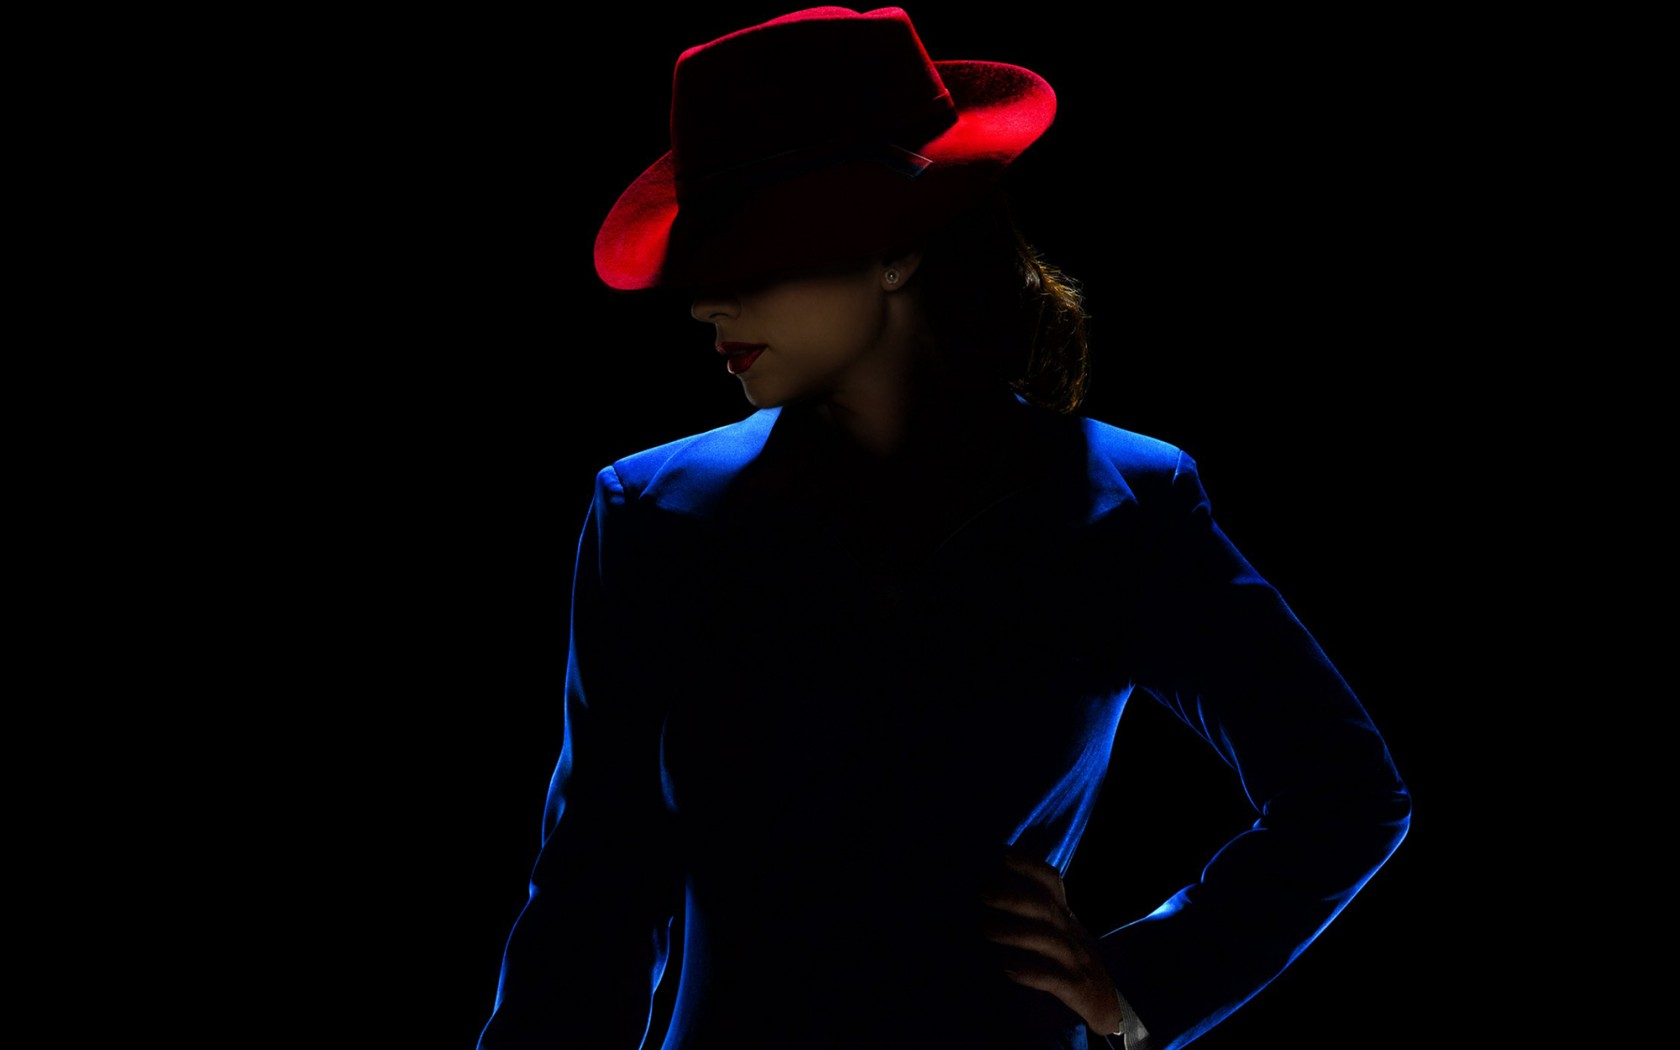 Hayley Atwell As Agent Carter 2015